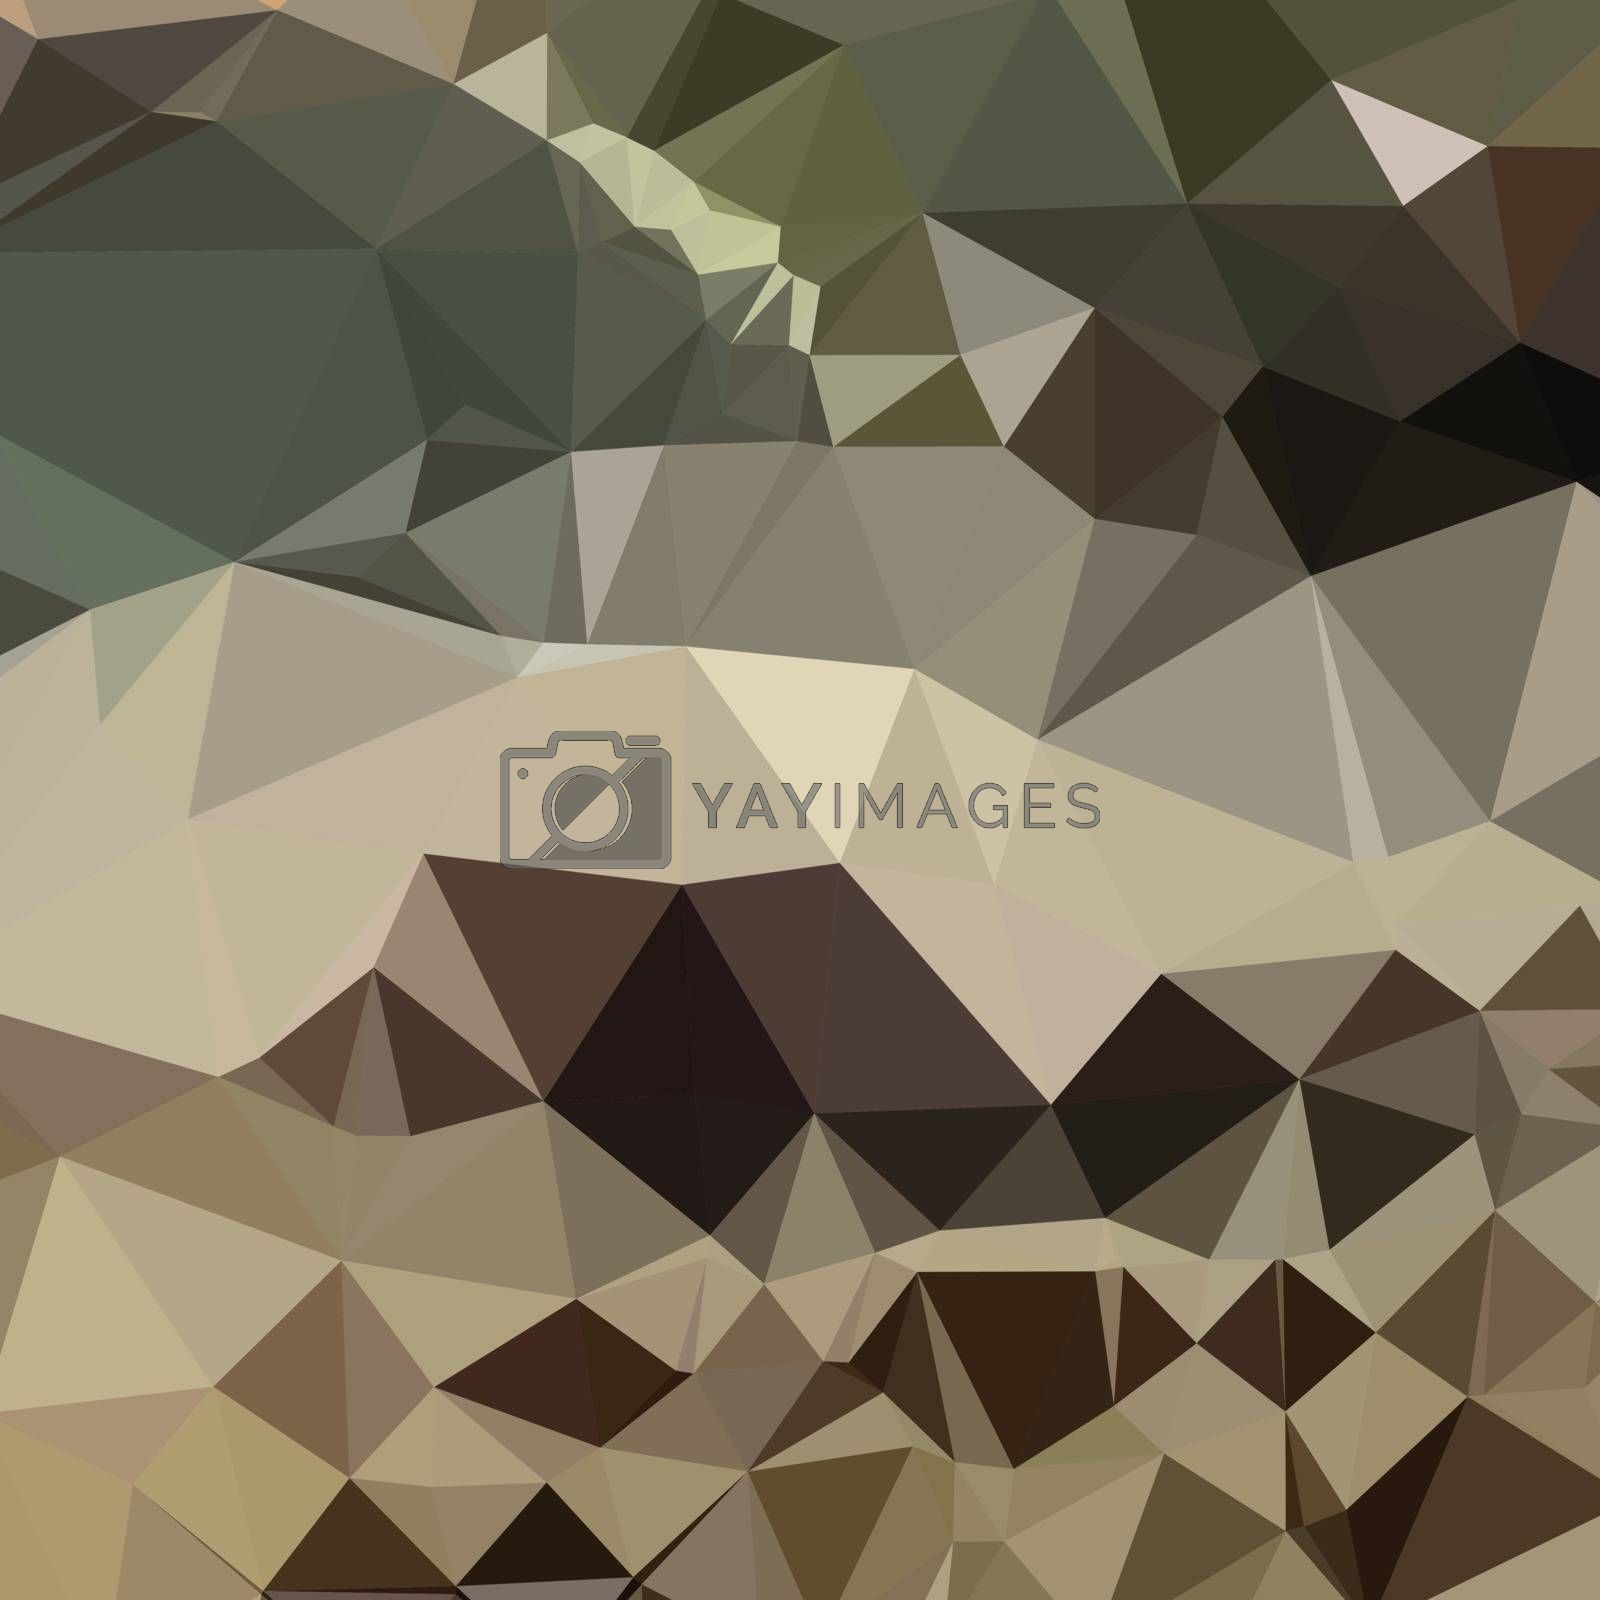 Low polygon style illustration of a drab brown blue abstract geometric background.